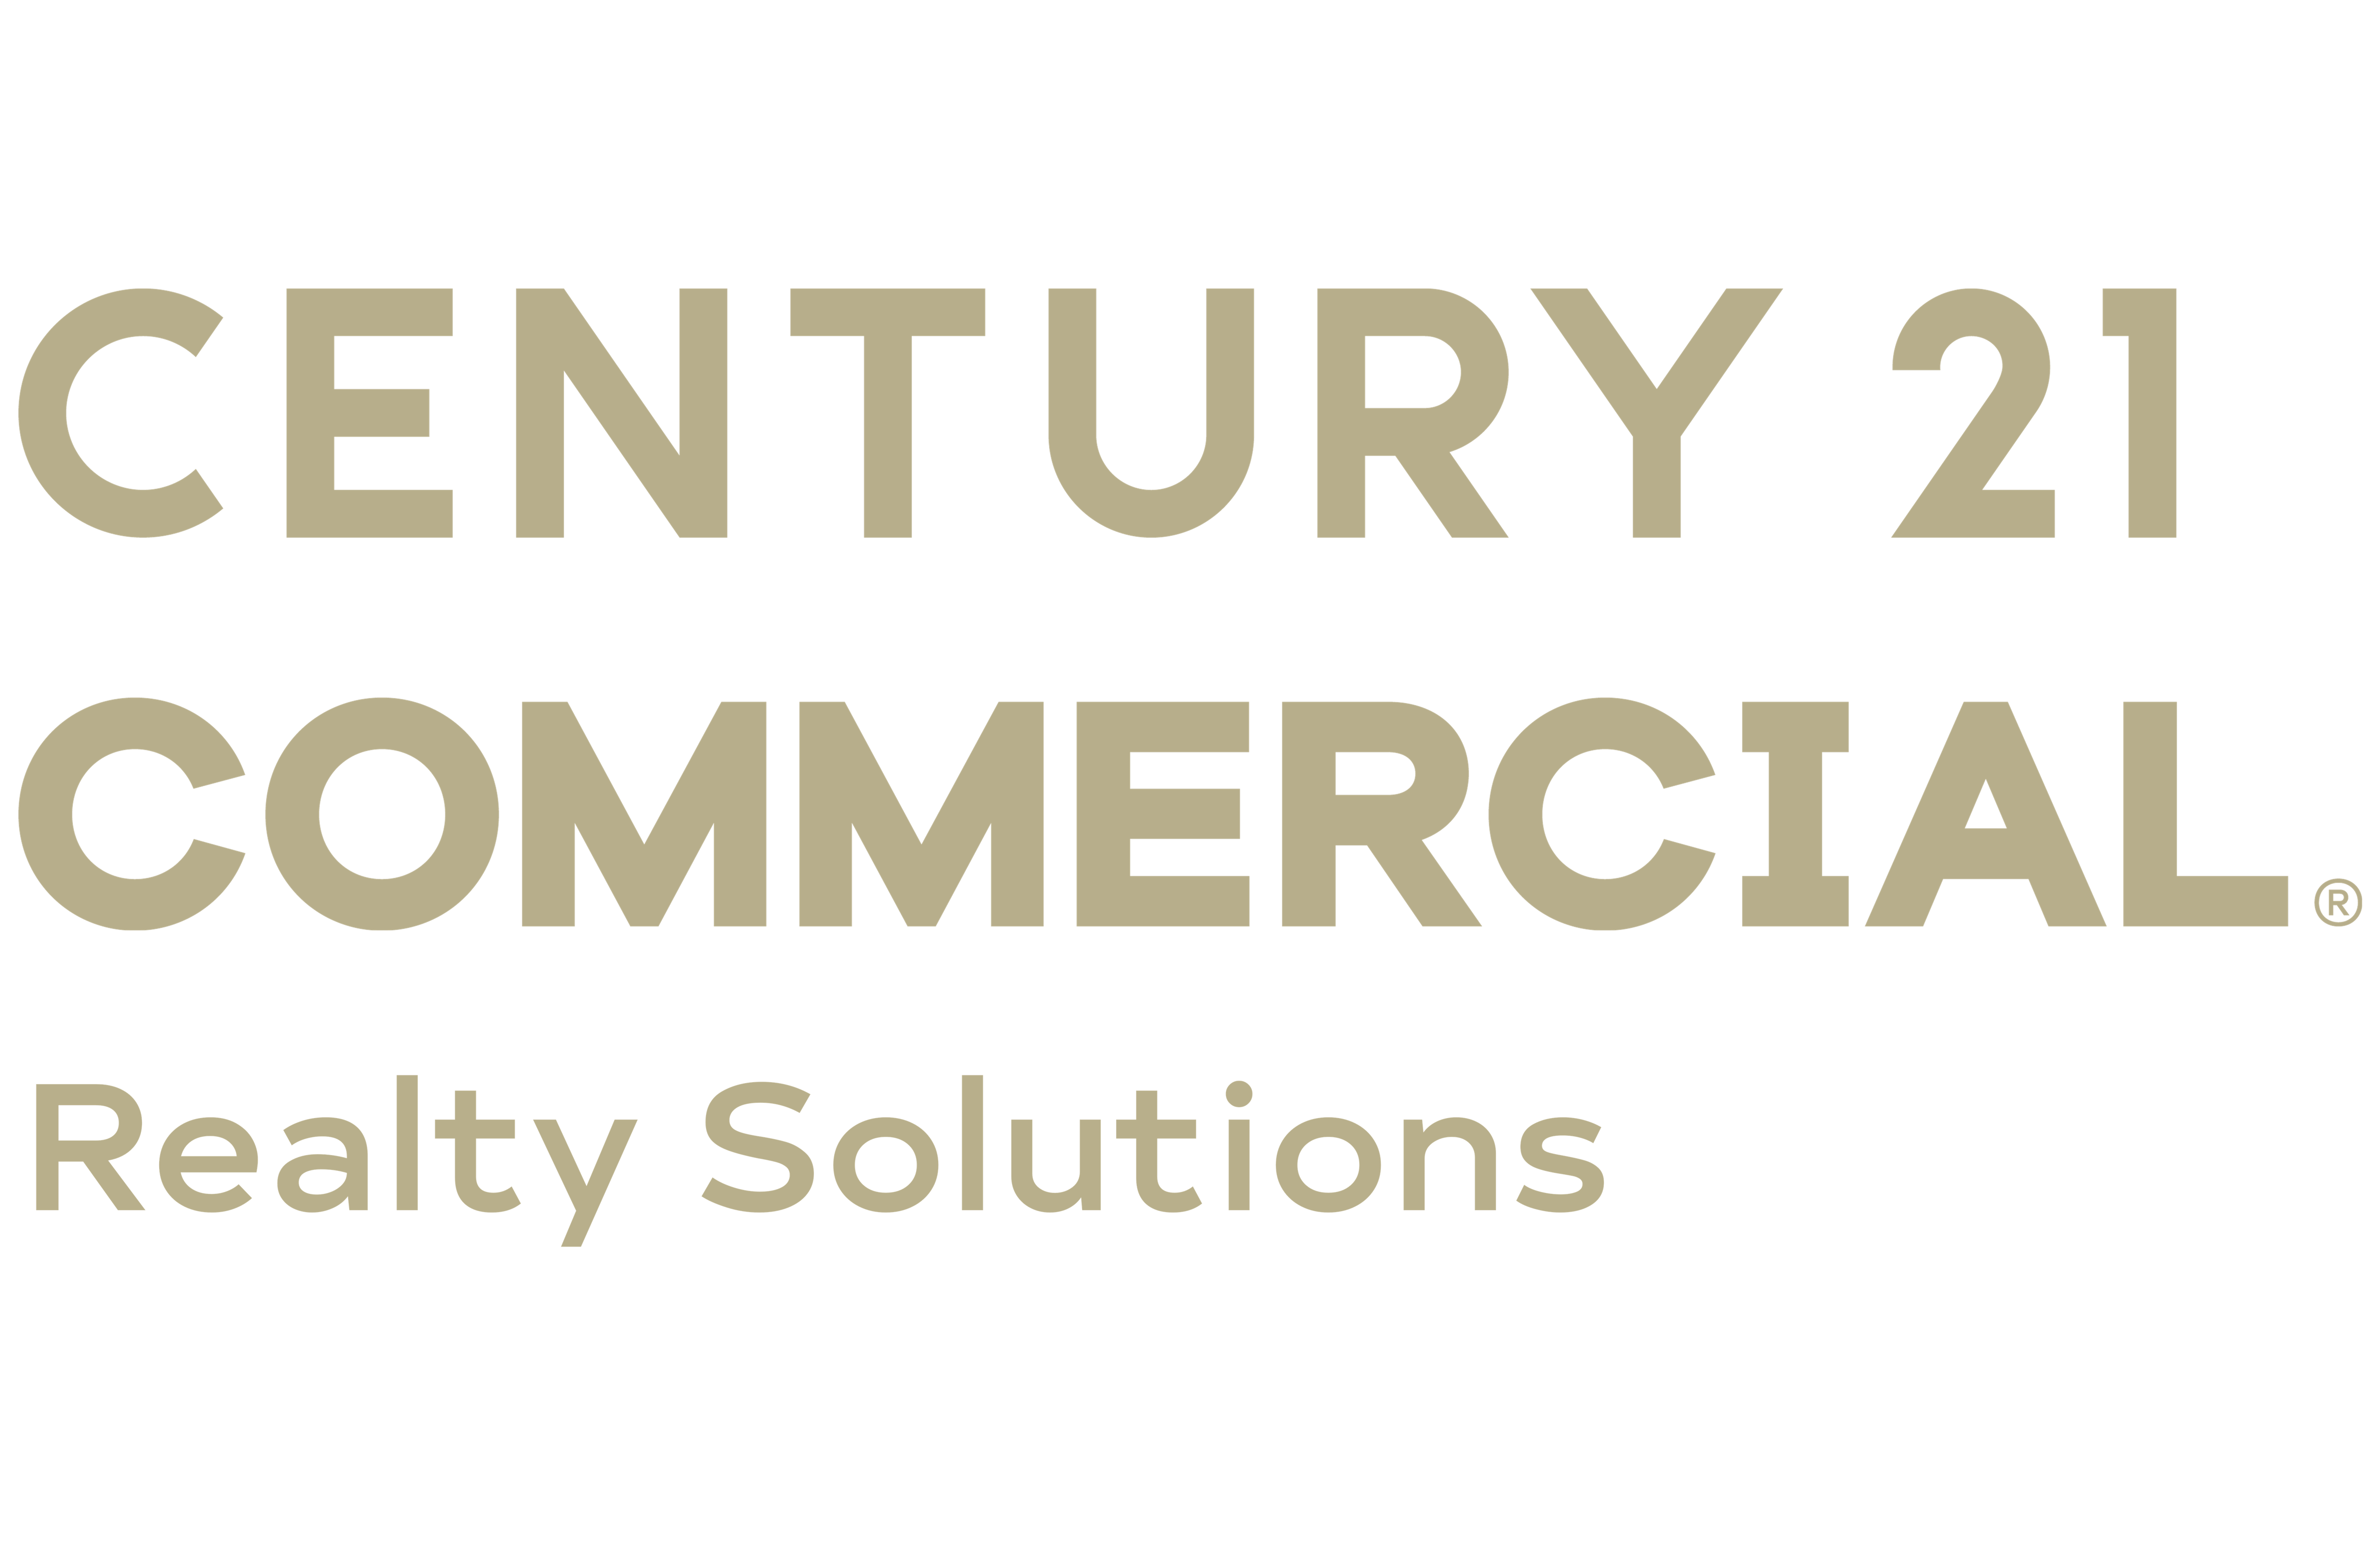 CENTURY 21 Realty Solutions